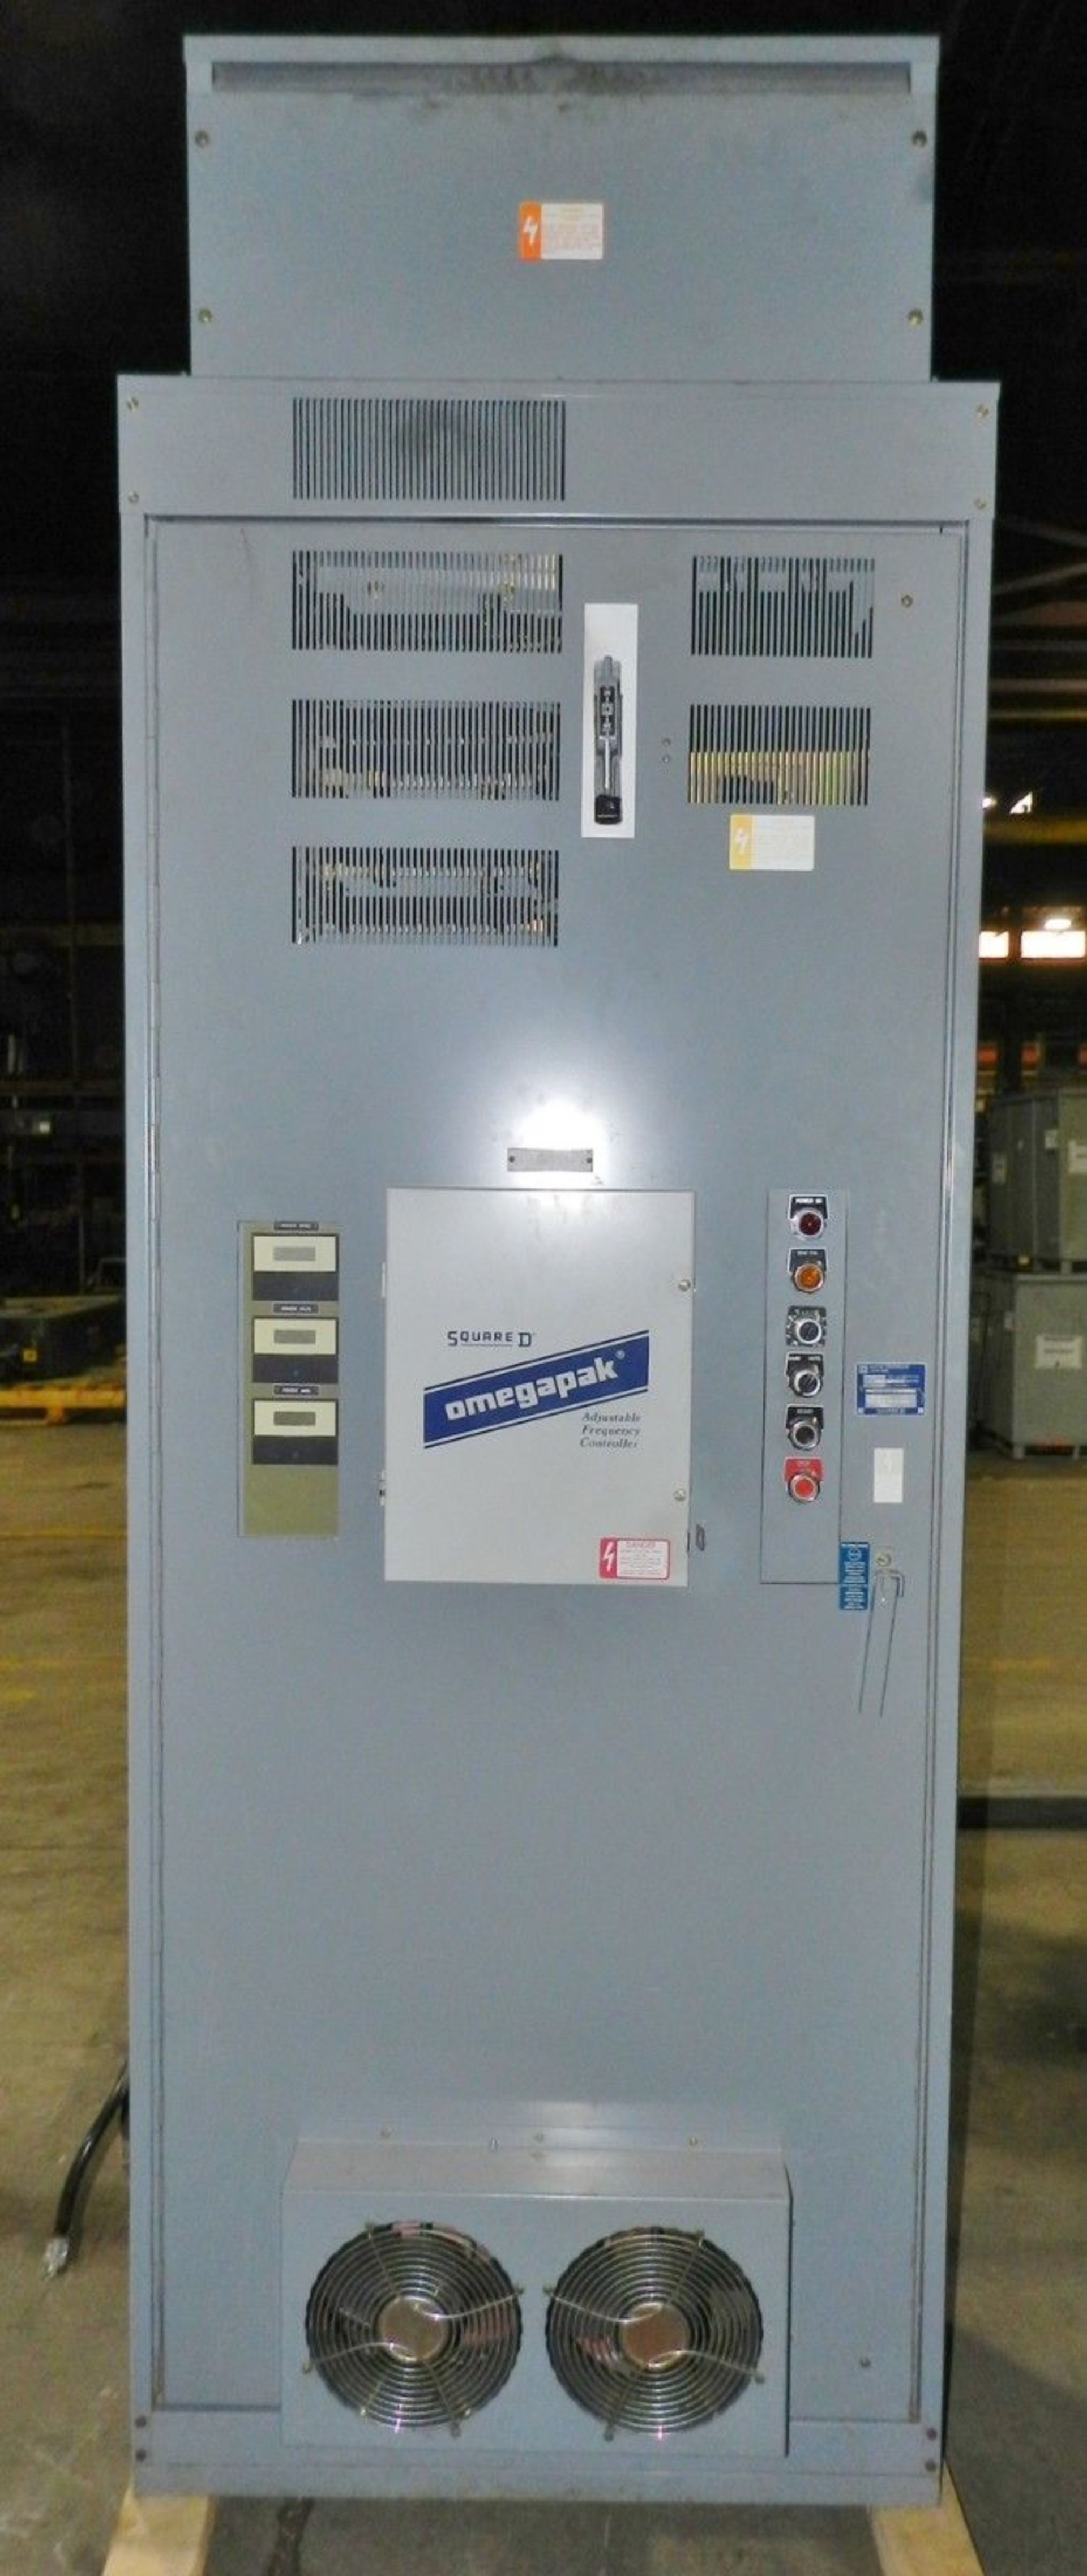 Lot 15 - Square D Omegapak 300 HP Adjustable Frequency Controller